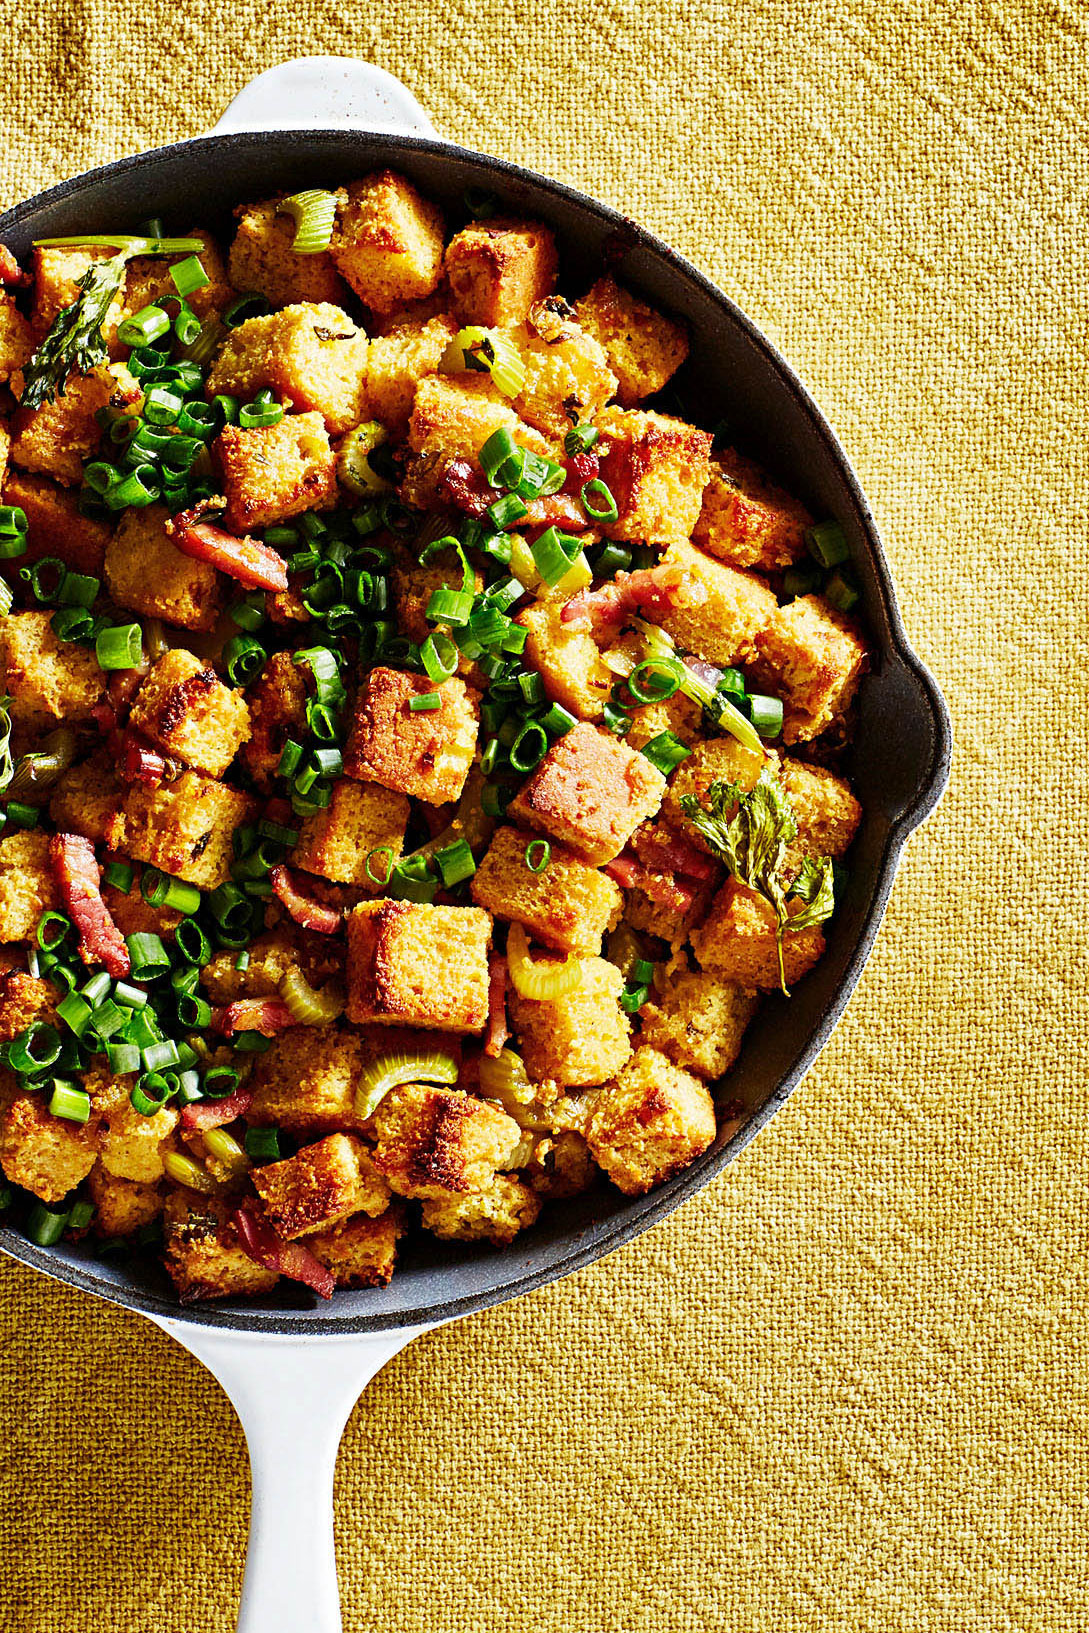 skillet Cornbread Stuffing with Pancetta and Scallions